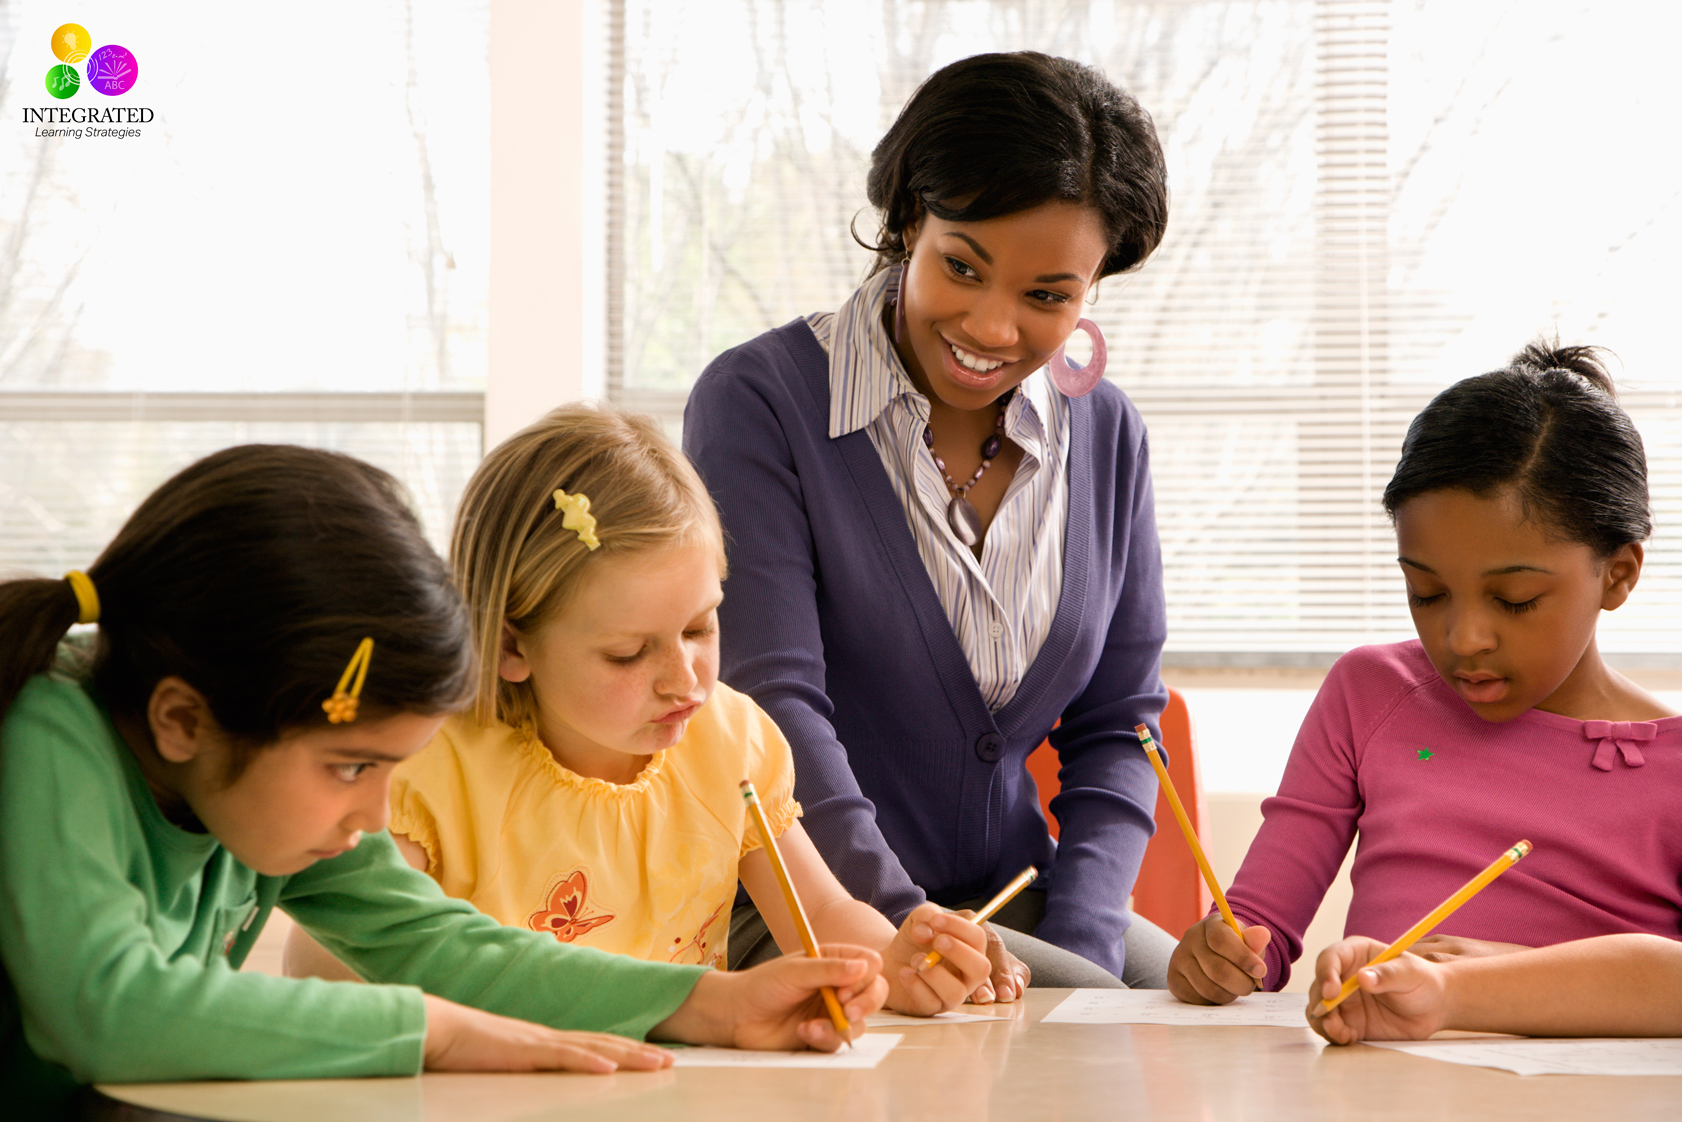 Why is following teacher's instructions important?